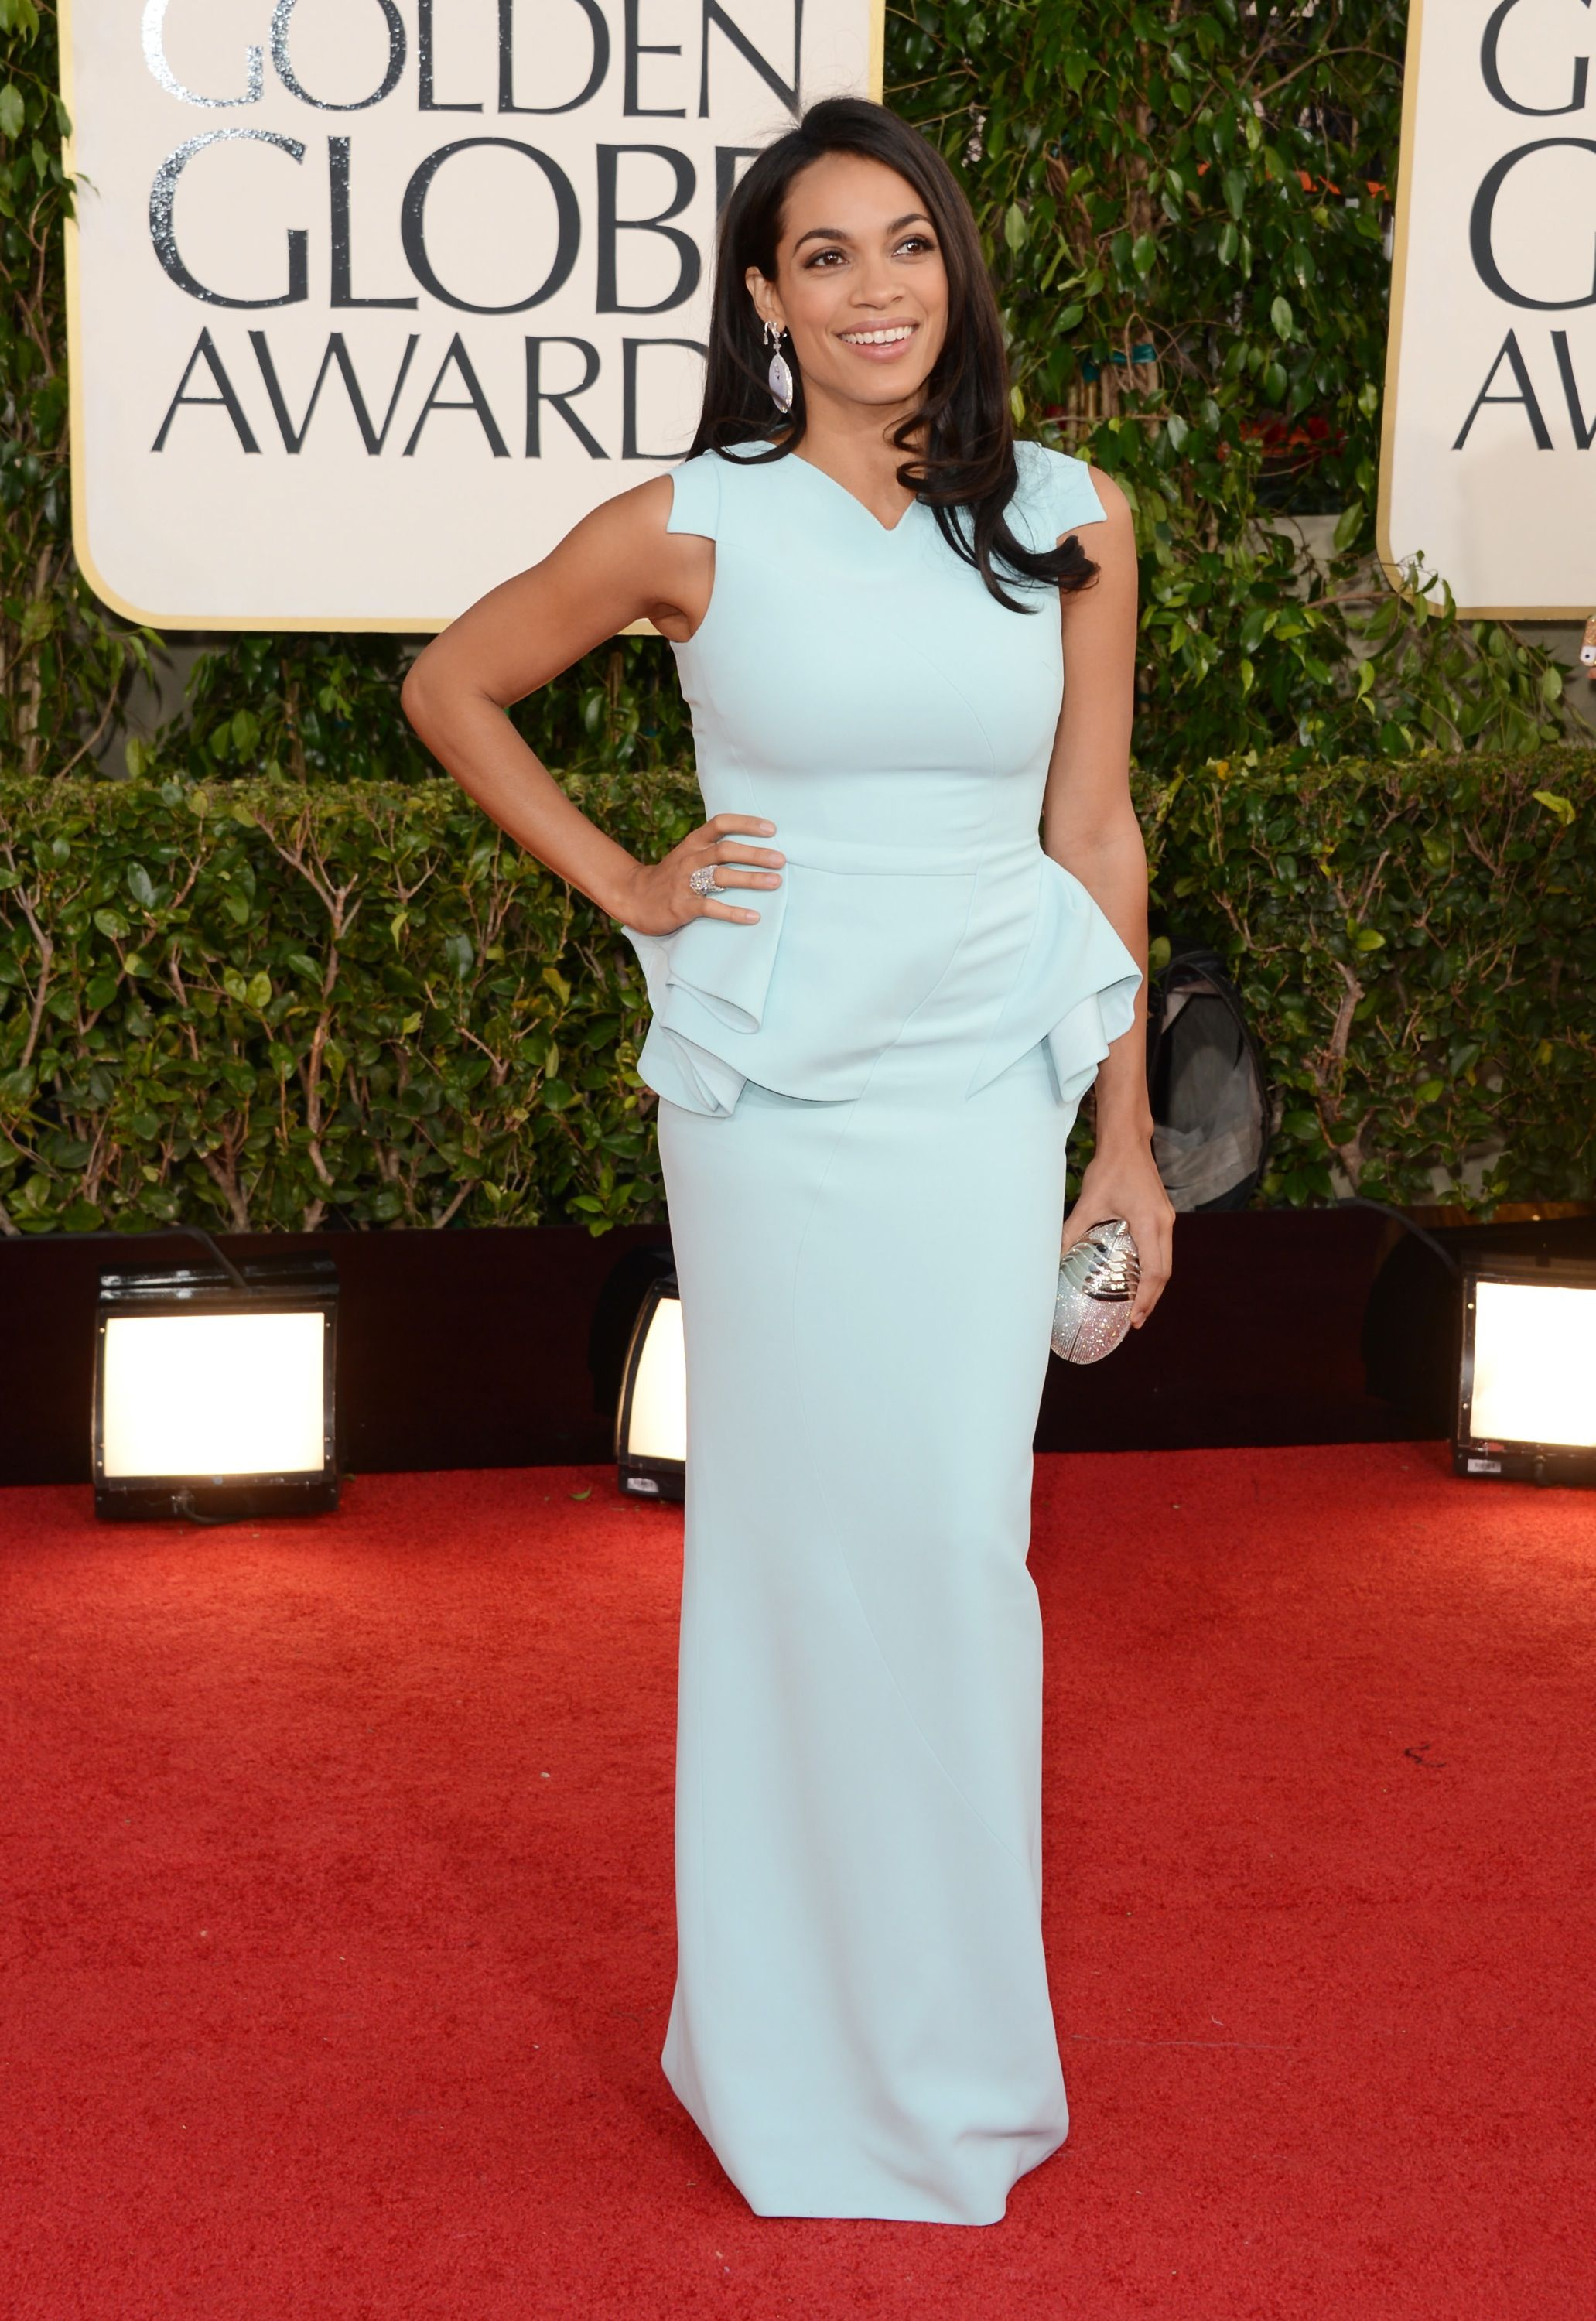 Rosario Dawson at the 70th Annual Golden Globe Awards in Beverly Hills 13.1.2013_08